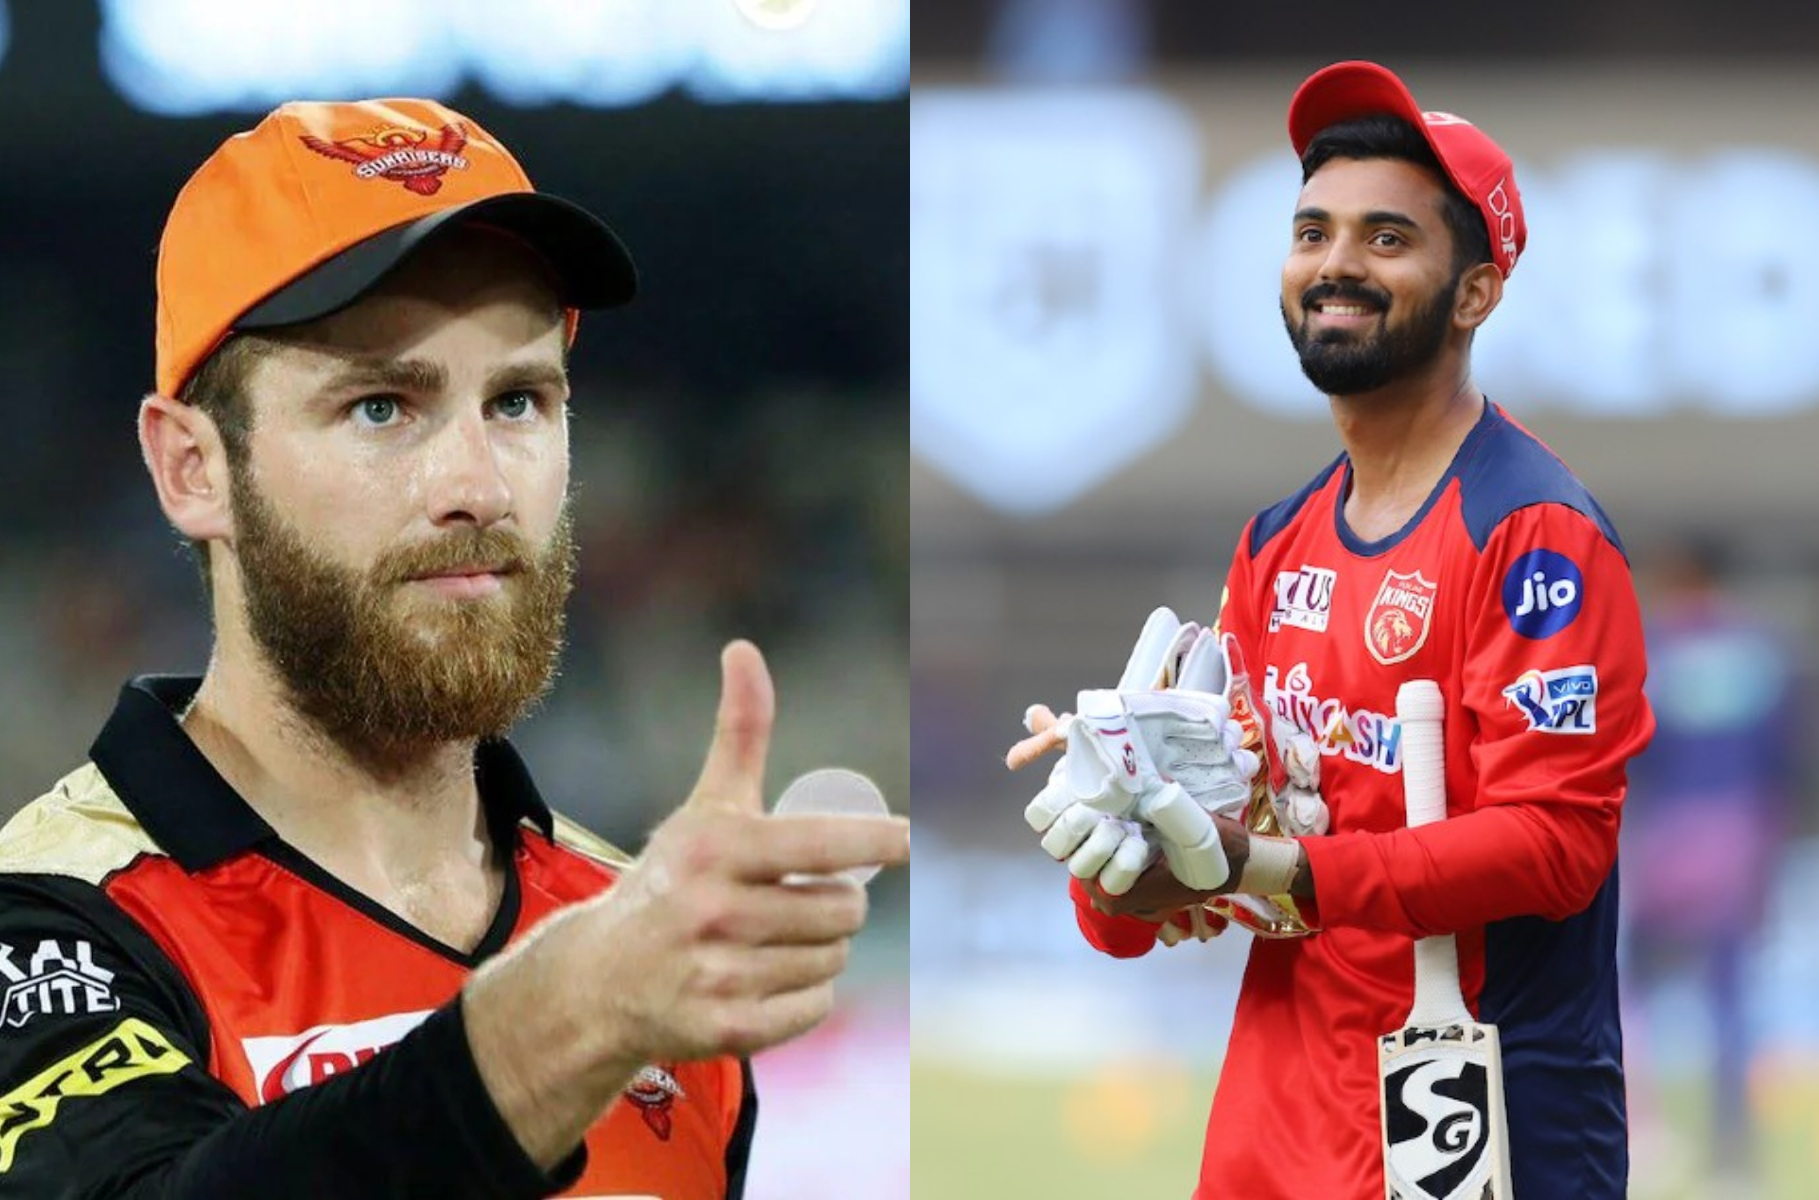 SRH had defeated PBKS in their previous encounter in Chennai in IPL 2021 | BCCI-IPL